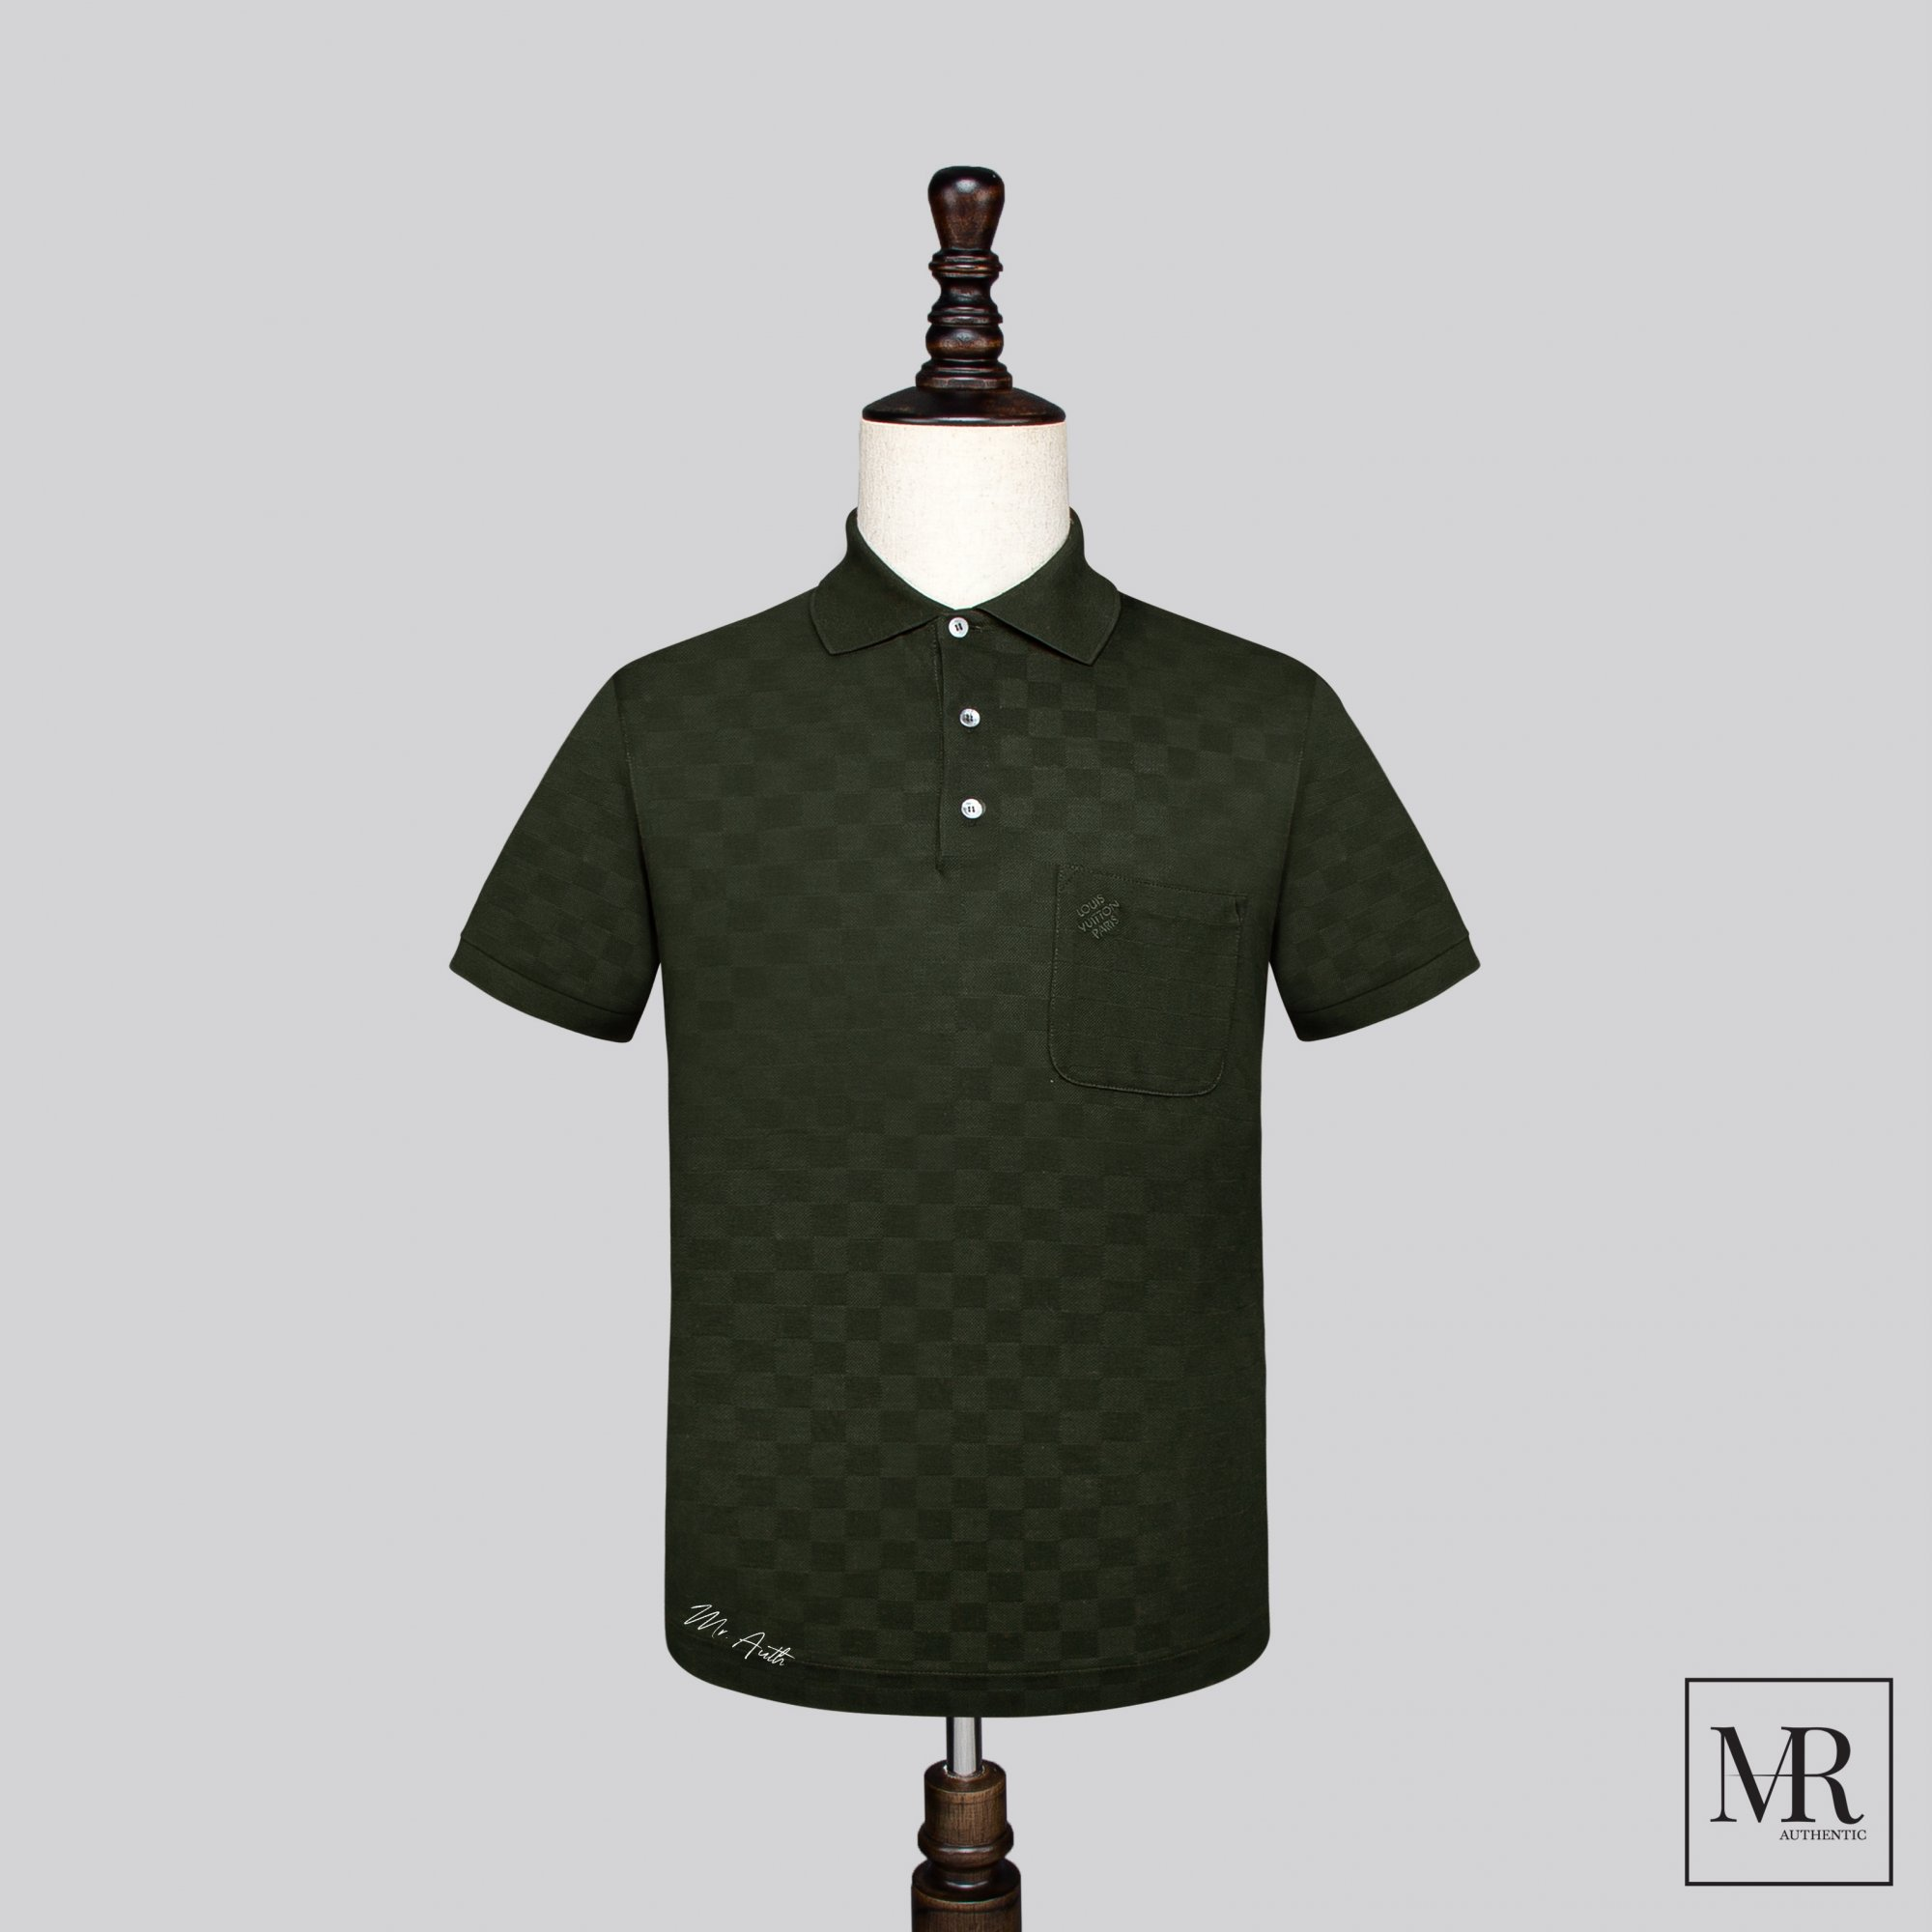 A_Mr_auth_ao_phong_polo2020  -144.jpg